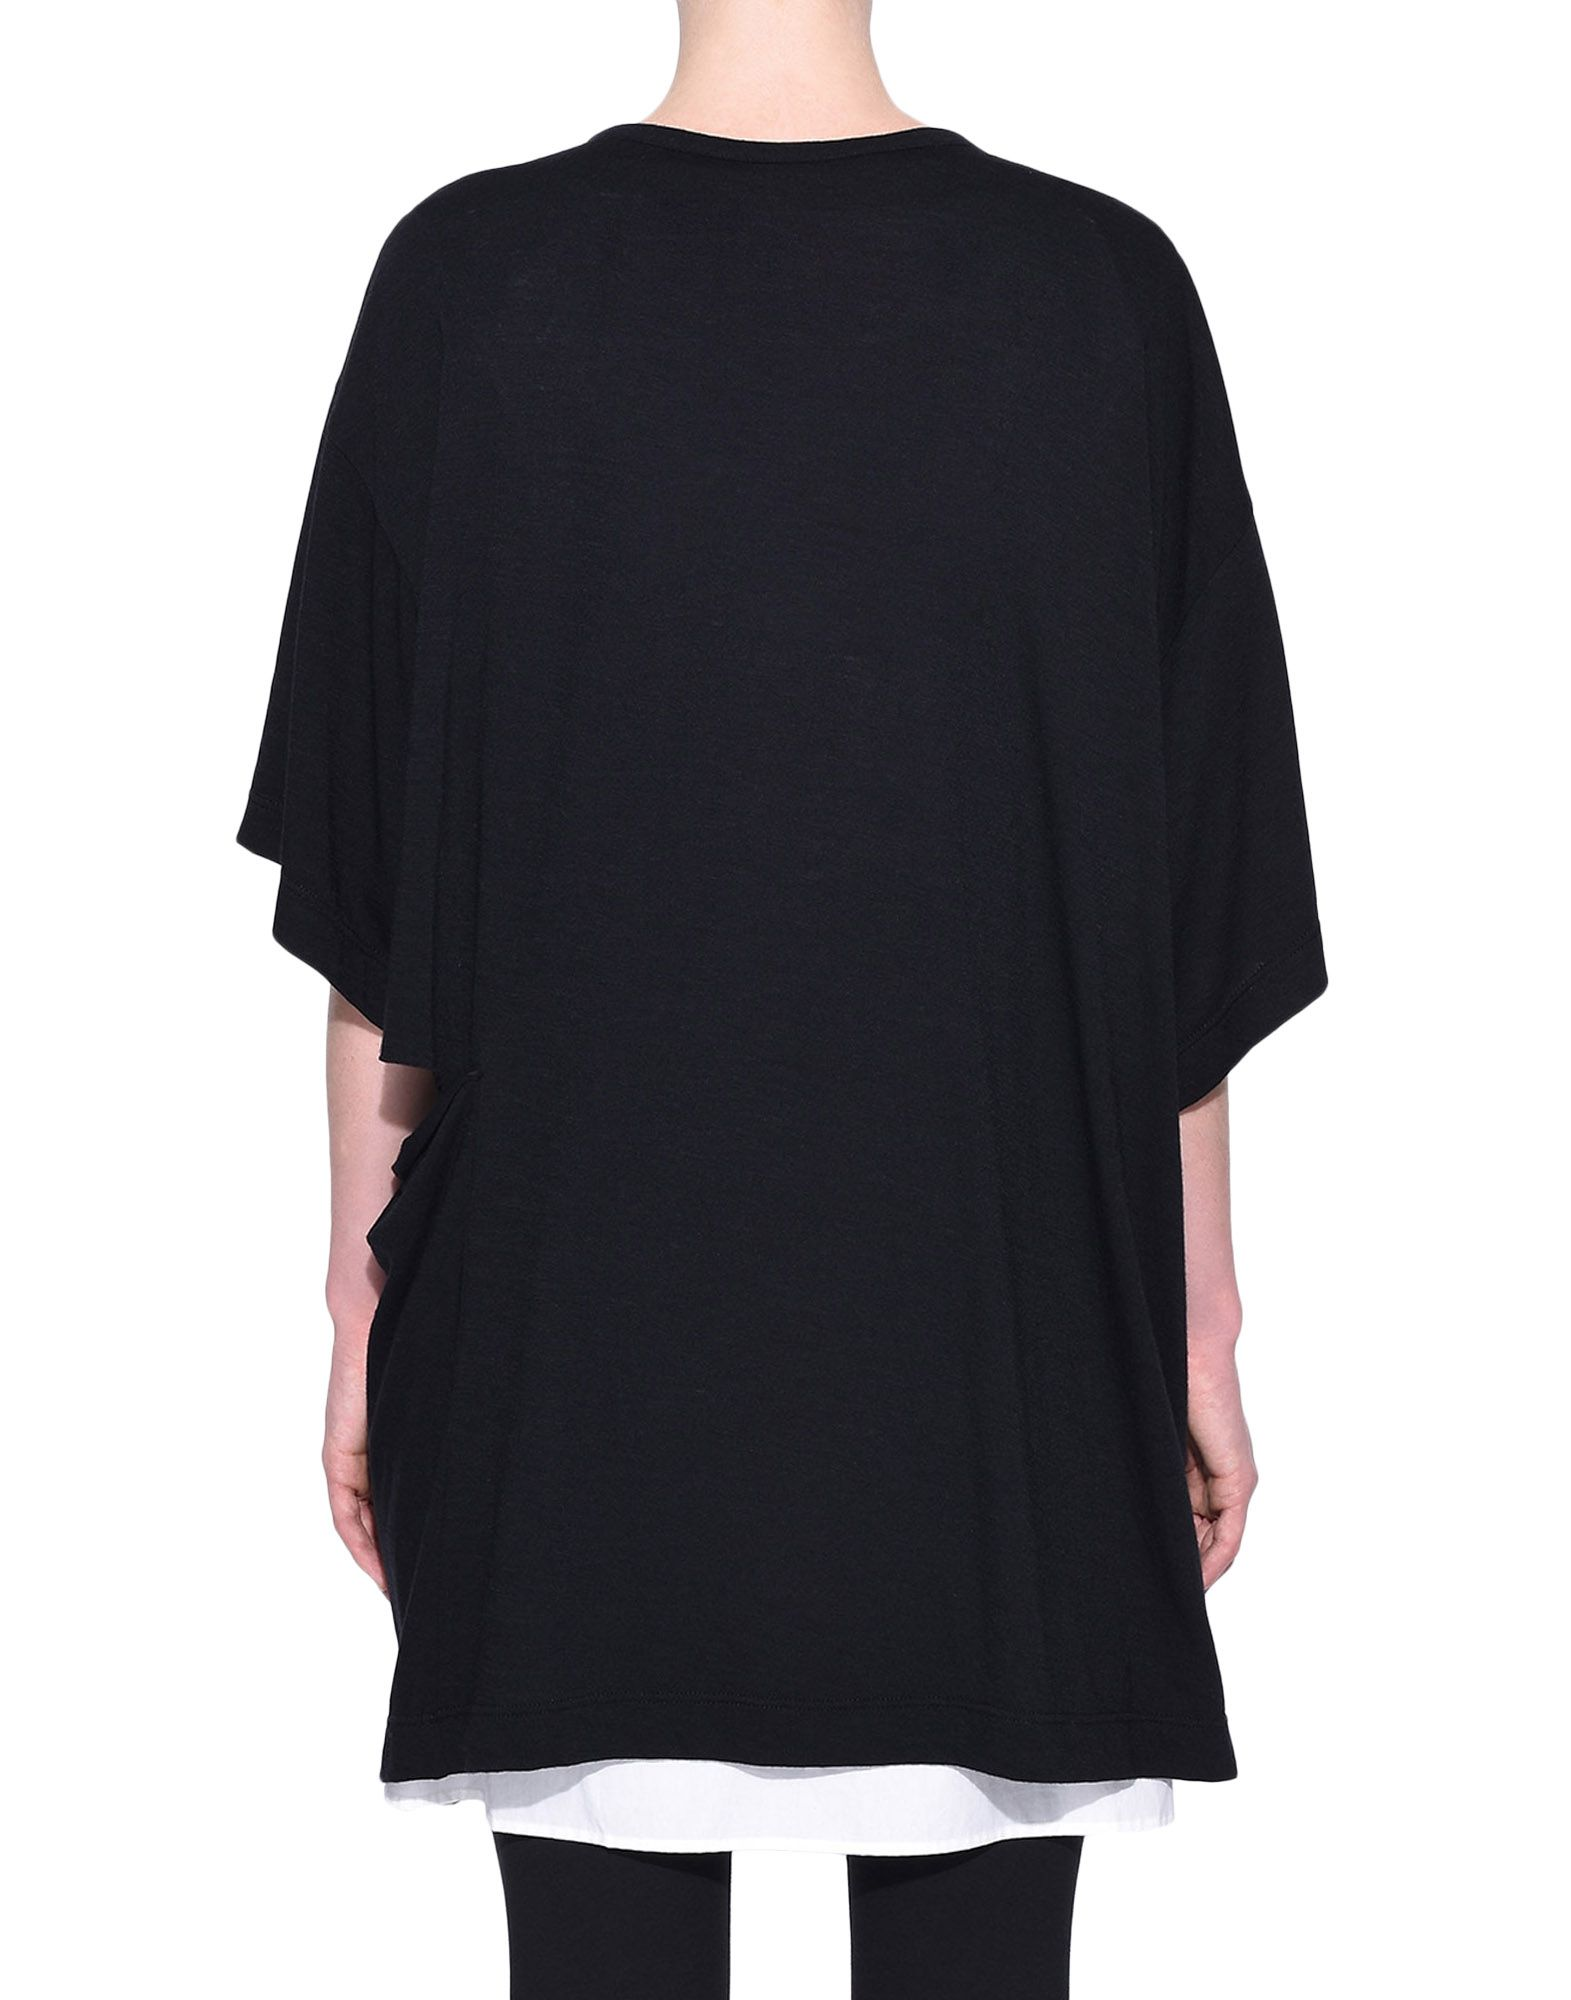 Y-3 Y-3 3-Stripes Layered Tee Short sleeve t-shirt Woman d